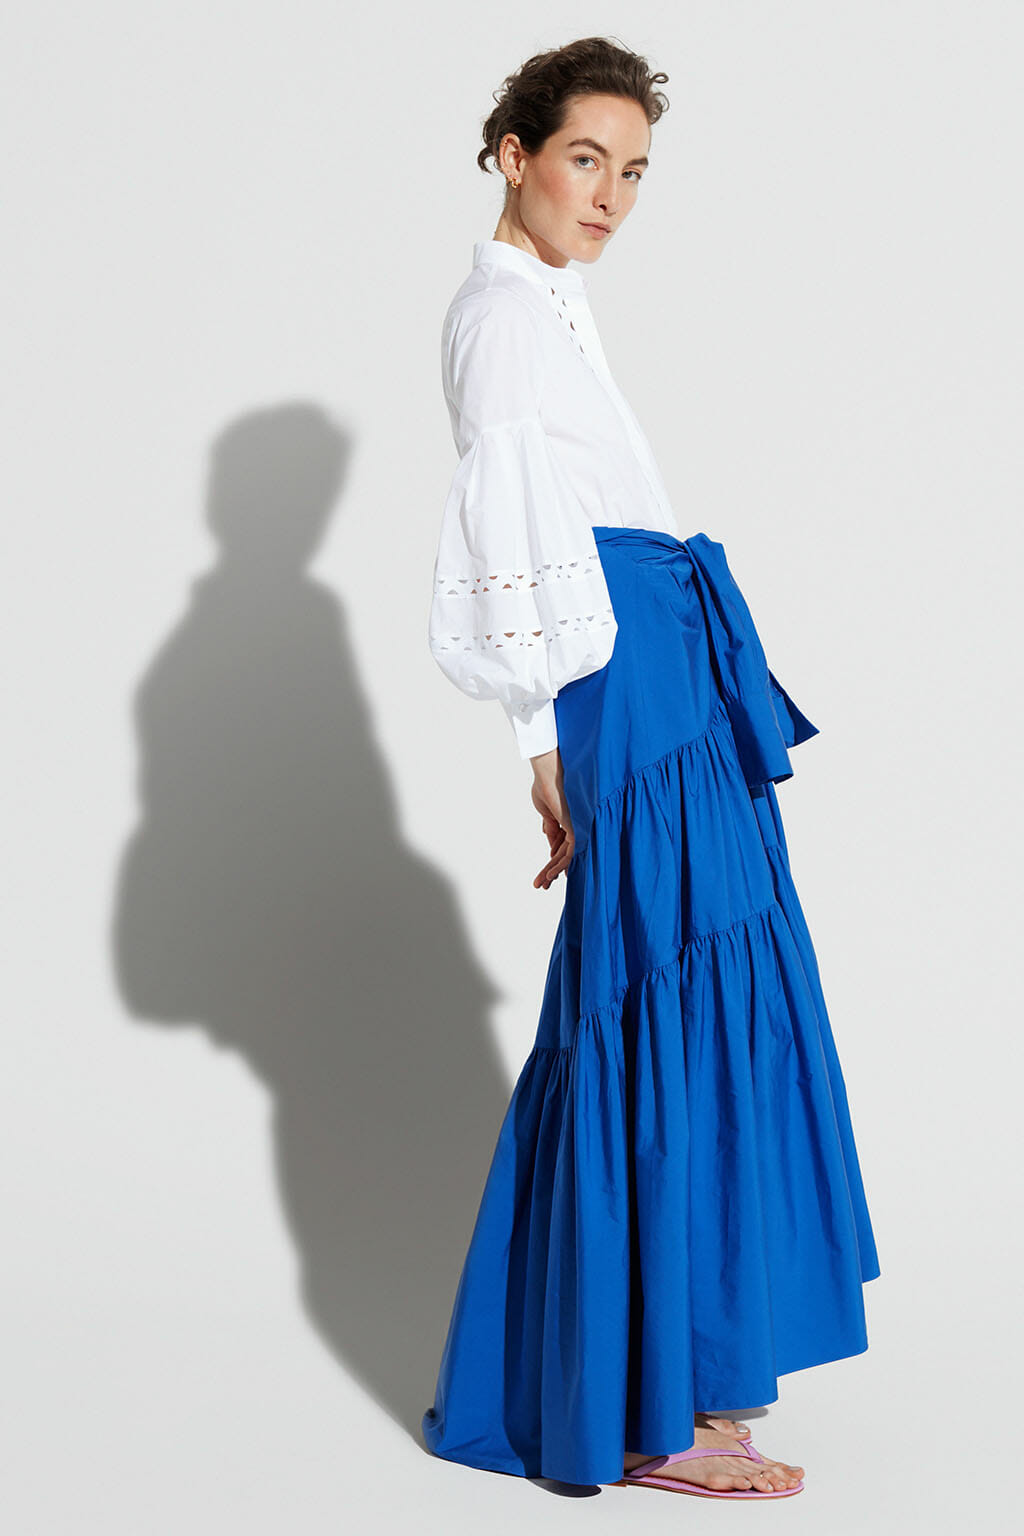 CH Carolina Herrera. New Womenswear Collection Painted in blue. Look 09